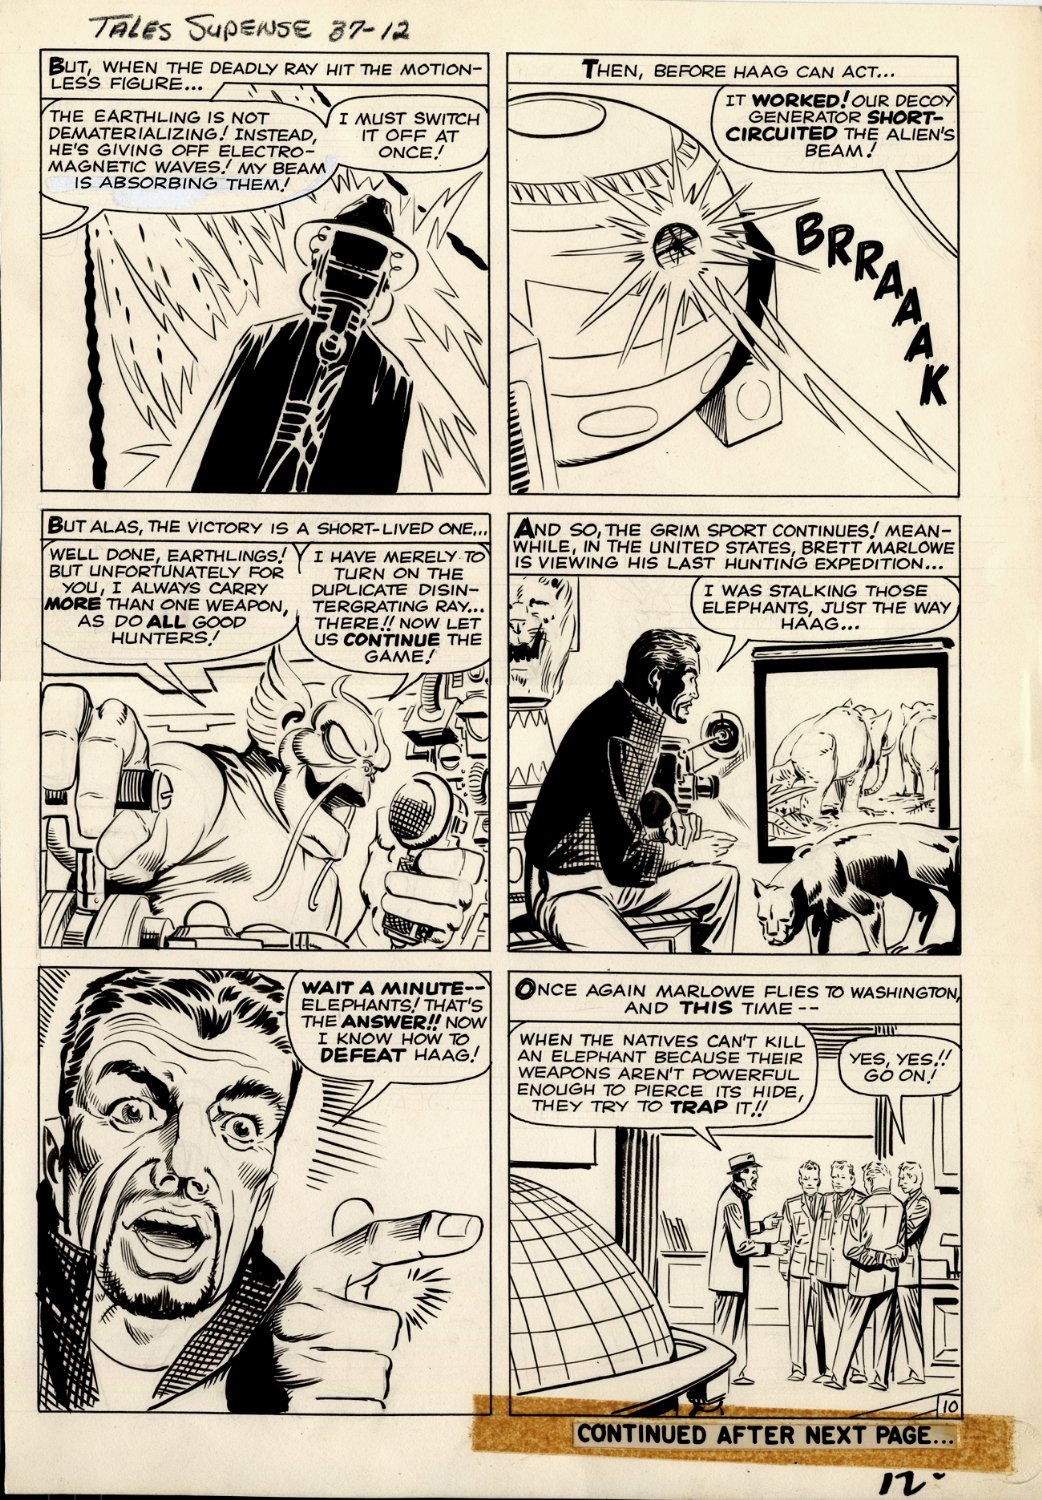 Tales of Suspense #37 p 10 (ALL STEVE DITKO LARGE ART DRAWN JUST 2 MONTHS BEFORE ASM #1!) 1962